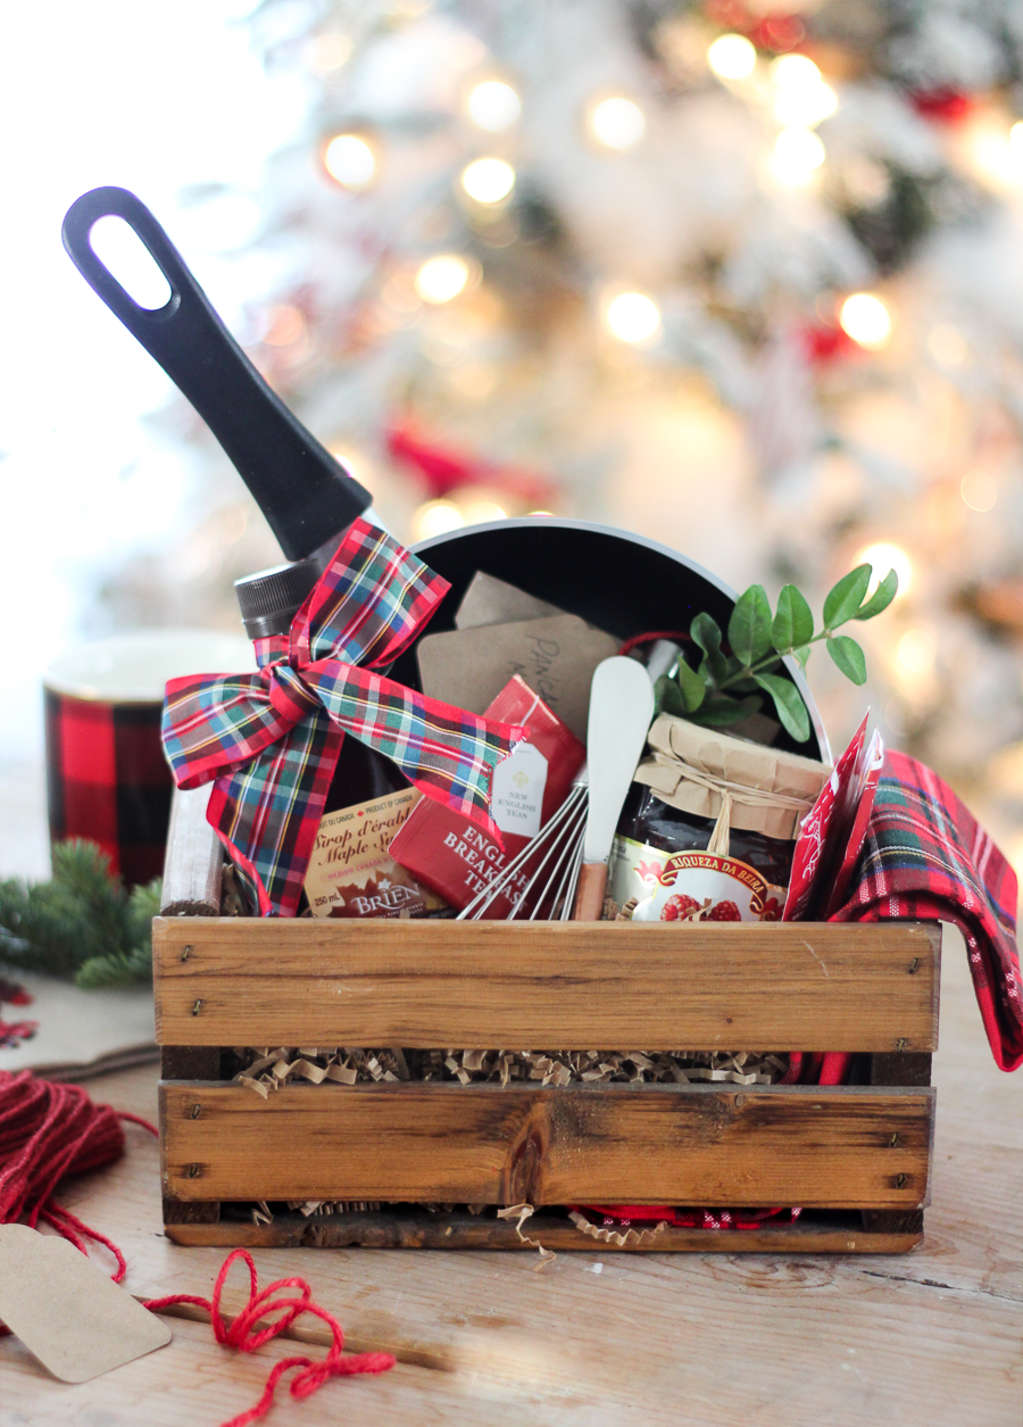 How To Make The Perfect Gift Basket | Apartment Therapy